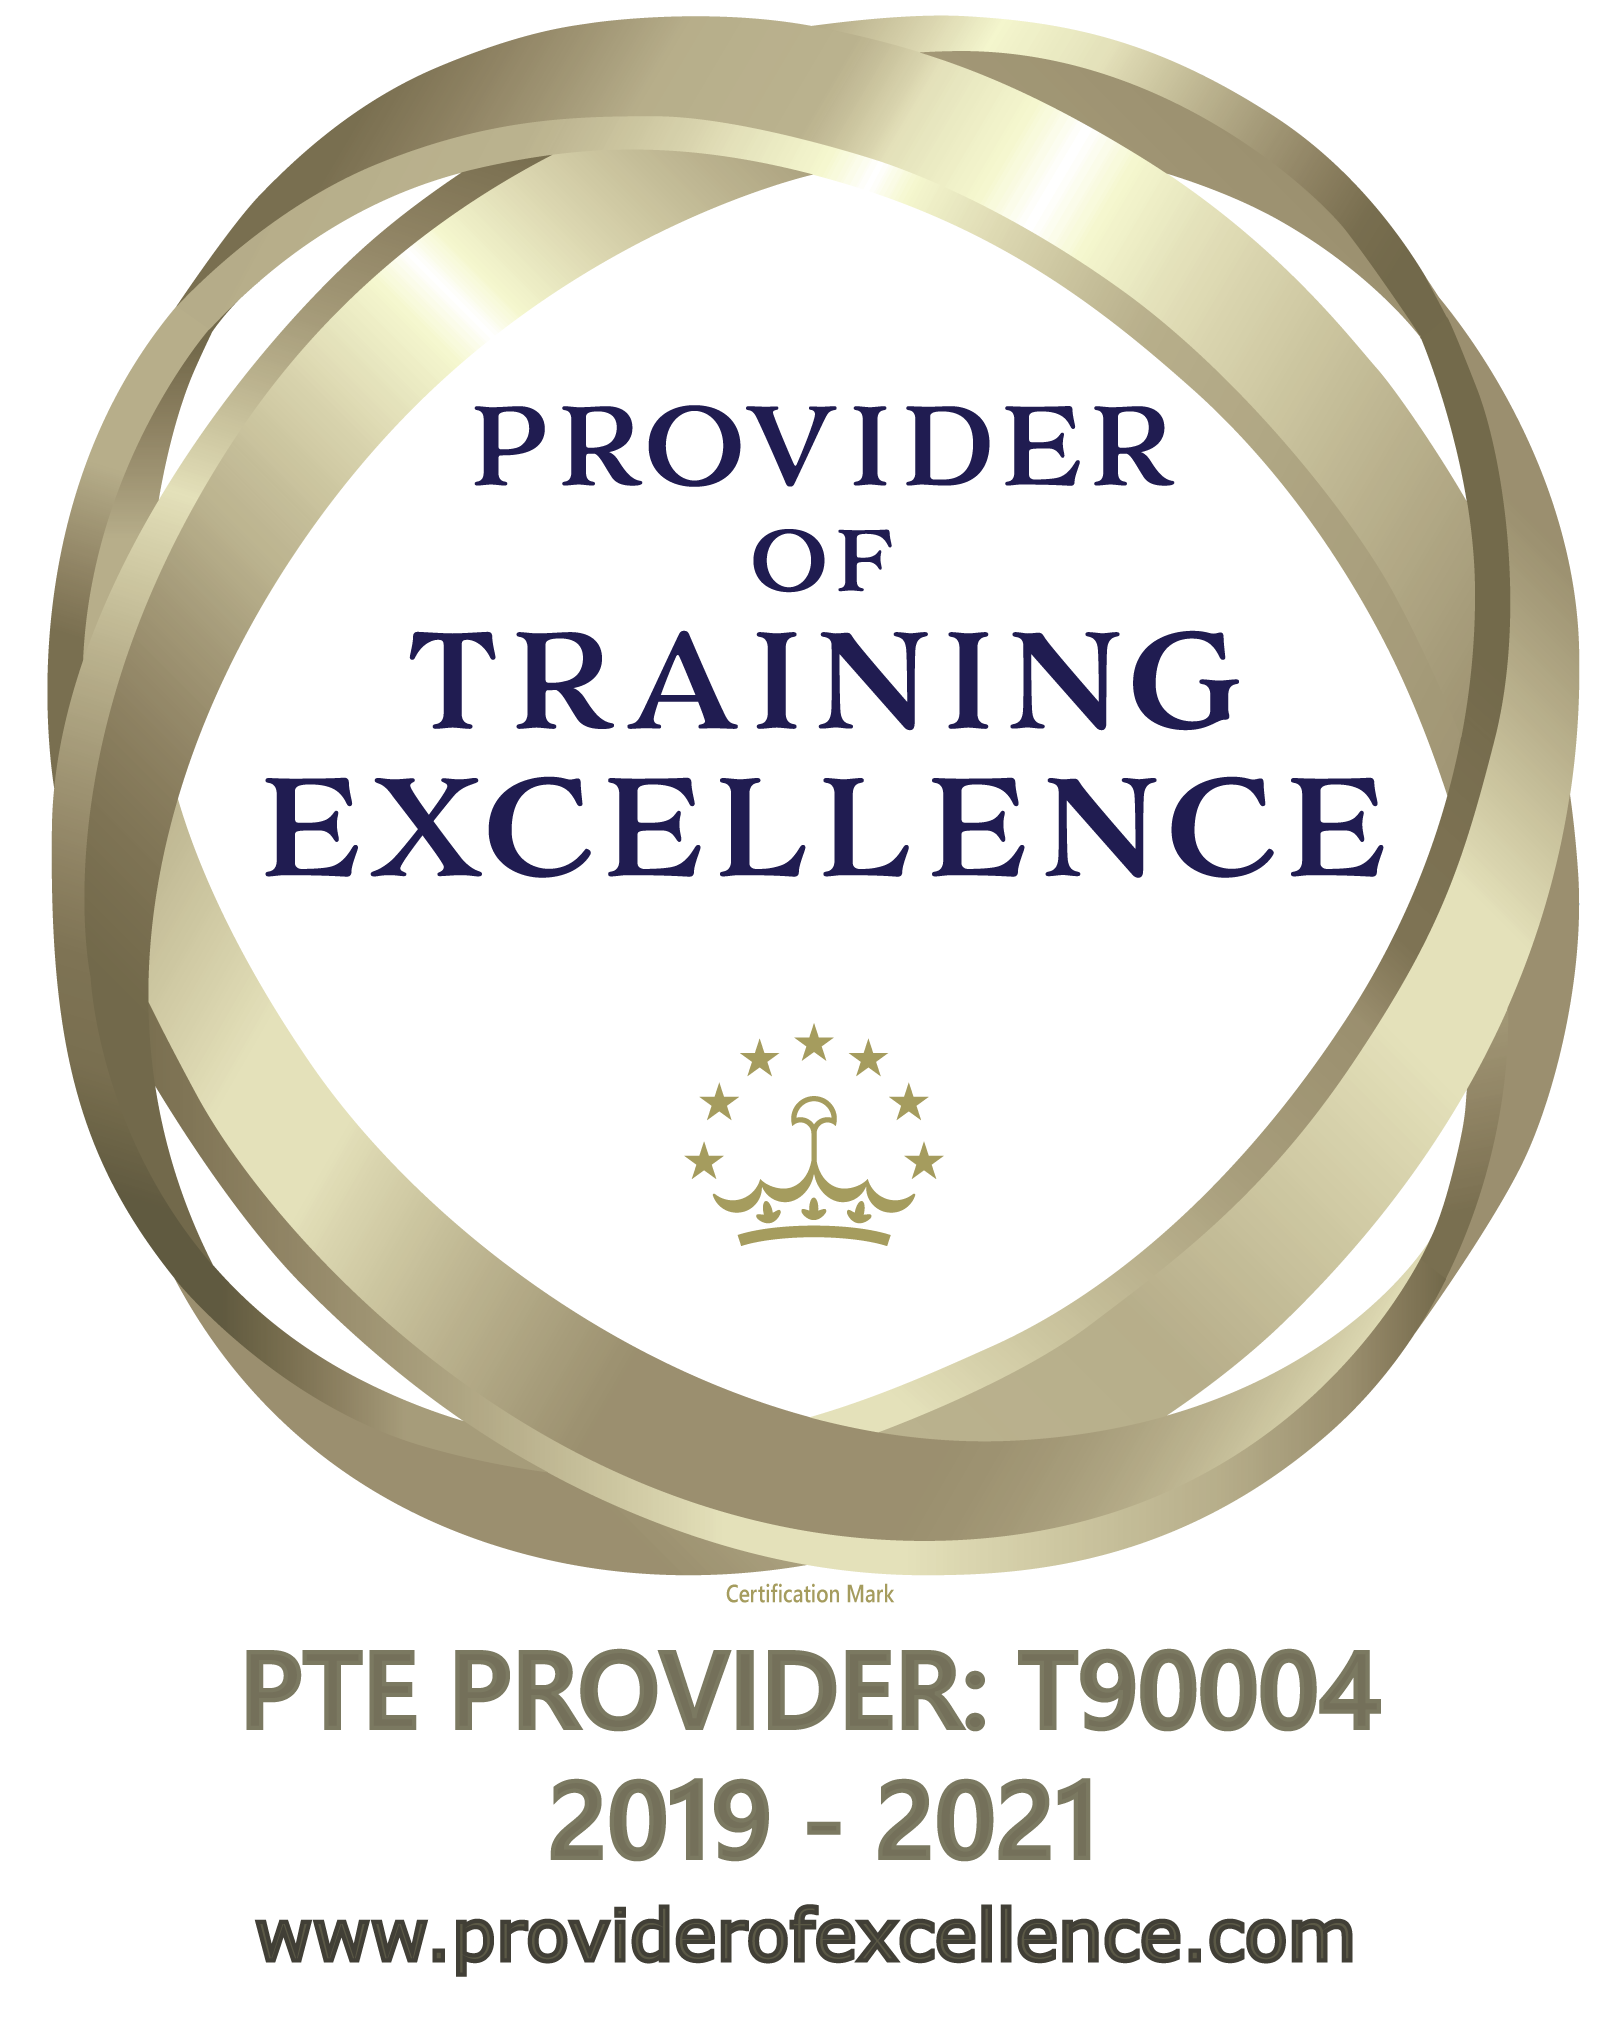 Provider of Training Excellence